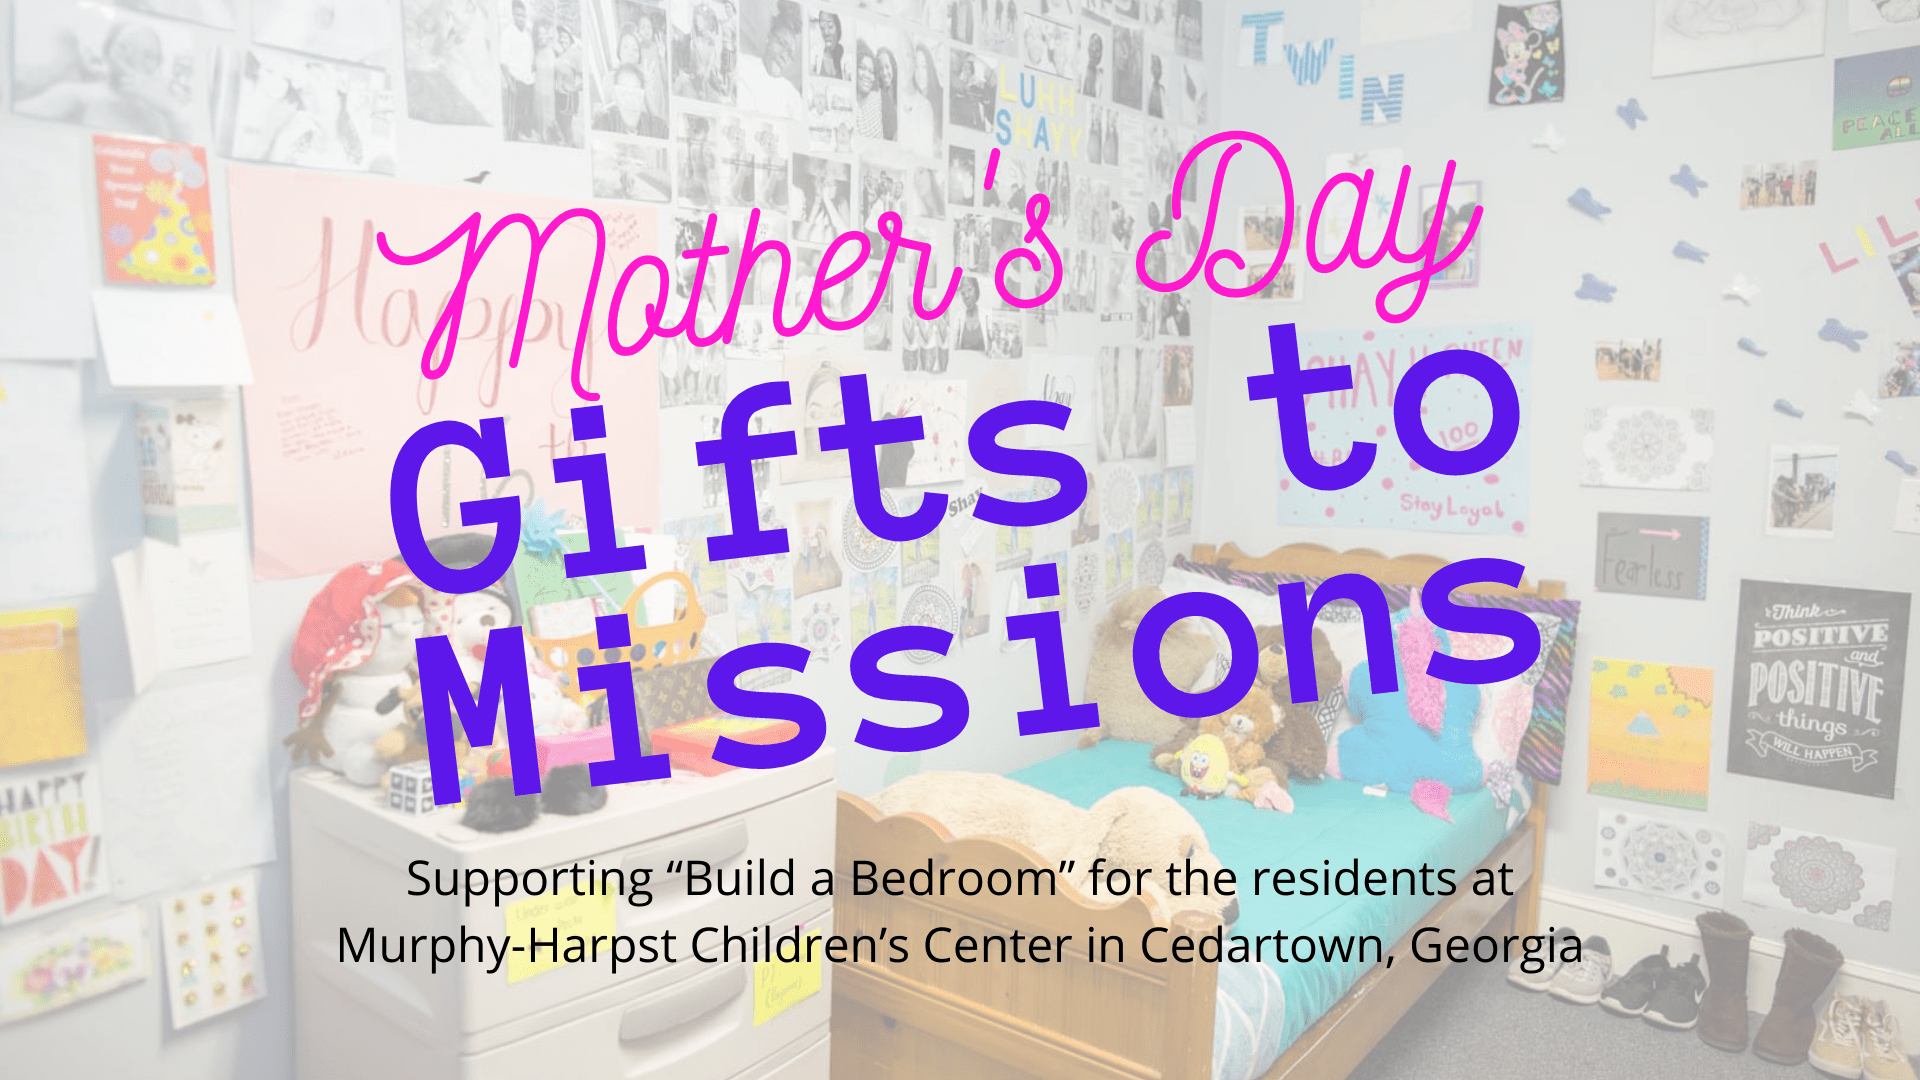 Mother's Day Gifts to Missions